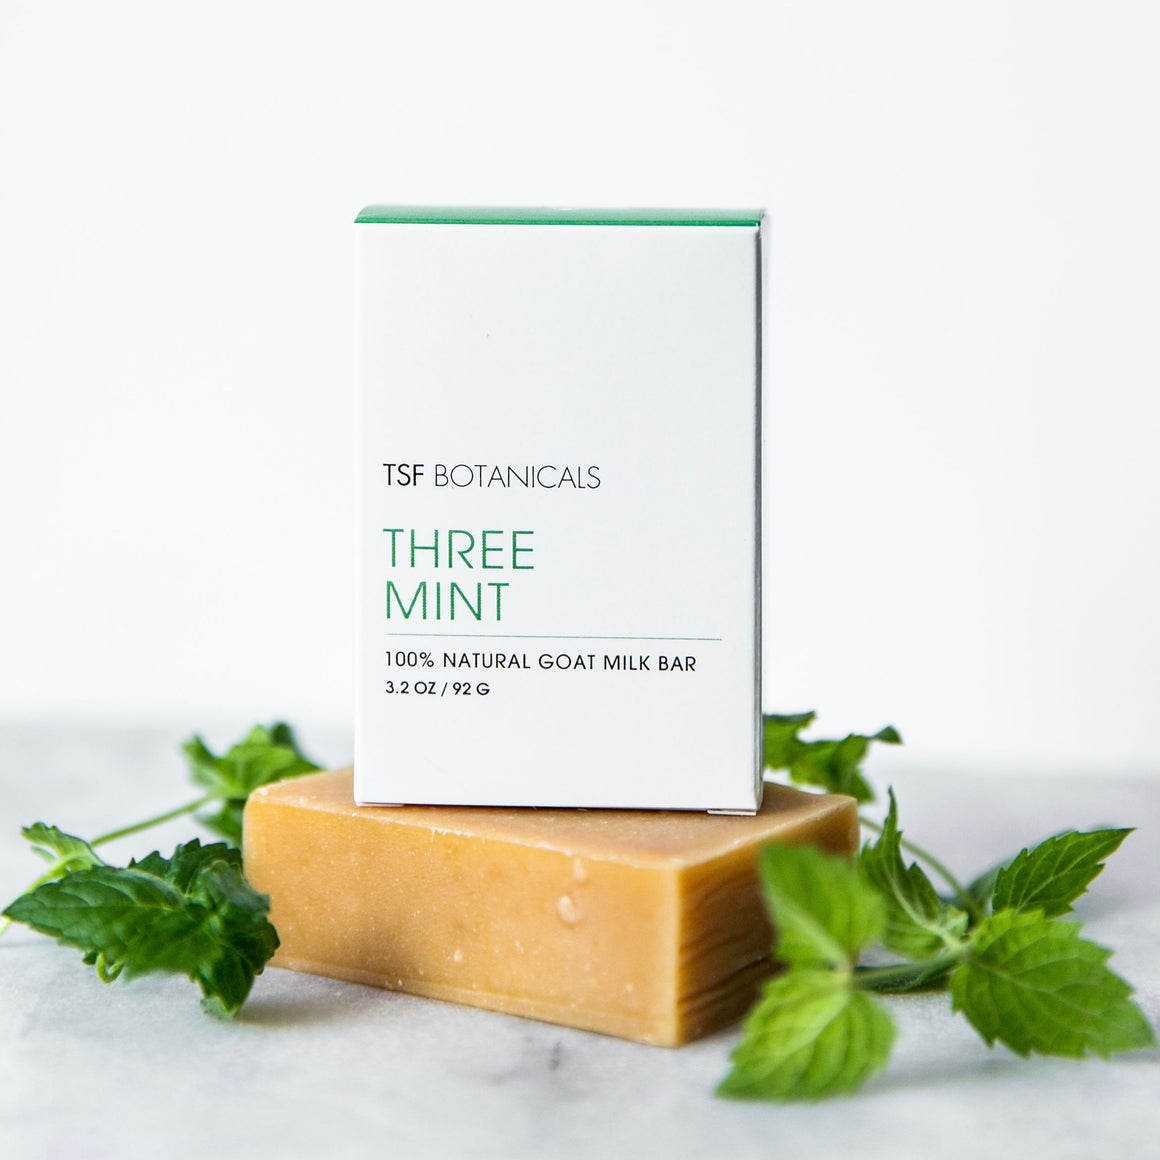 GOAT MILK FACE BAR CLEANSER 💚 Olive Oil + Shea Butter || Reviving Aroma of Three Kinds of Mint || Awakening + Rejuvenating | Men's Essential